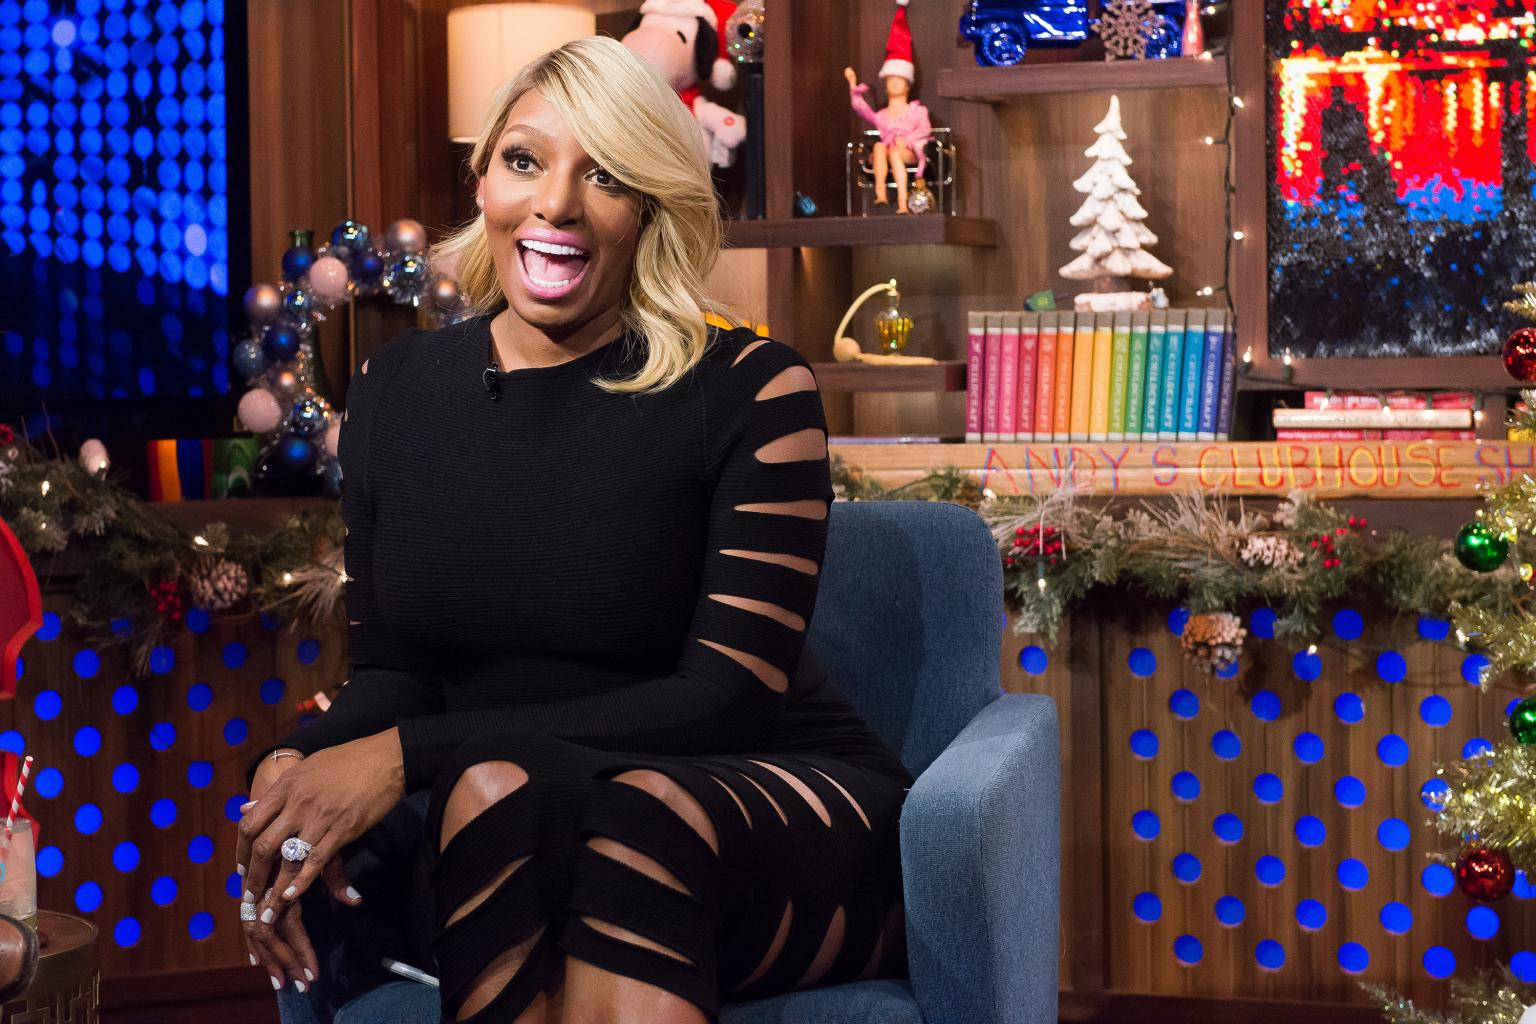 �Real Housewives� Star NeNe Leakes Hit With Federal Tax Lien, Owes More Than $800K